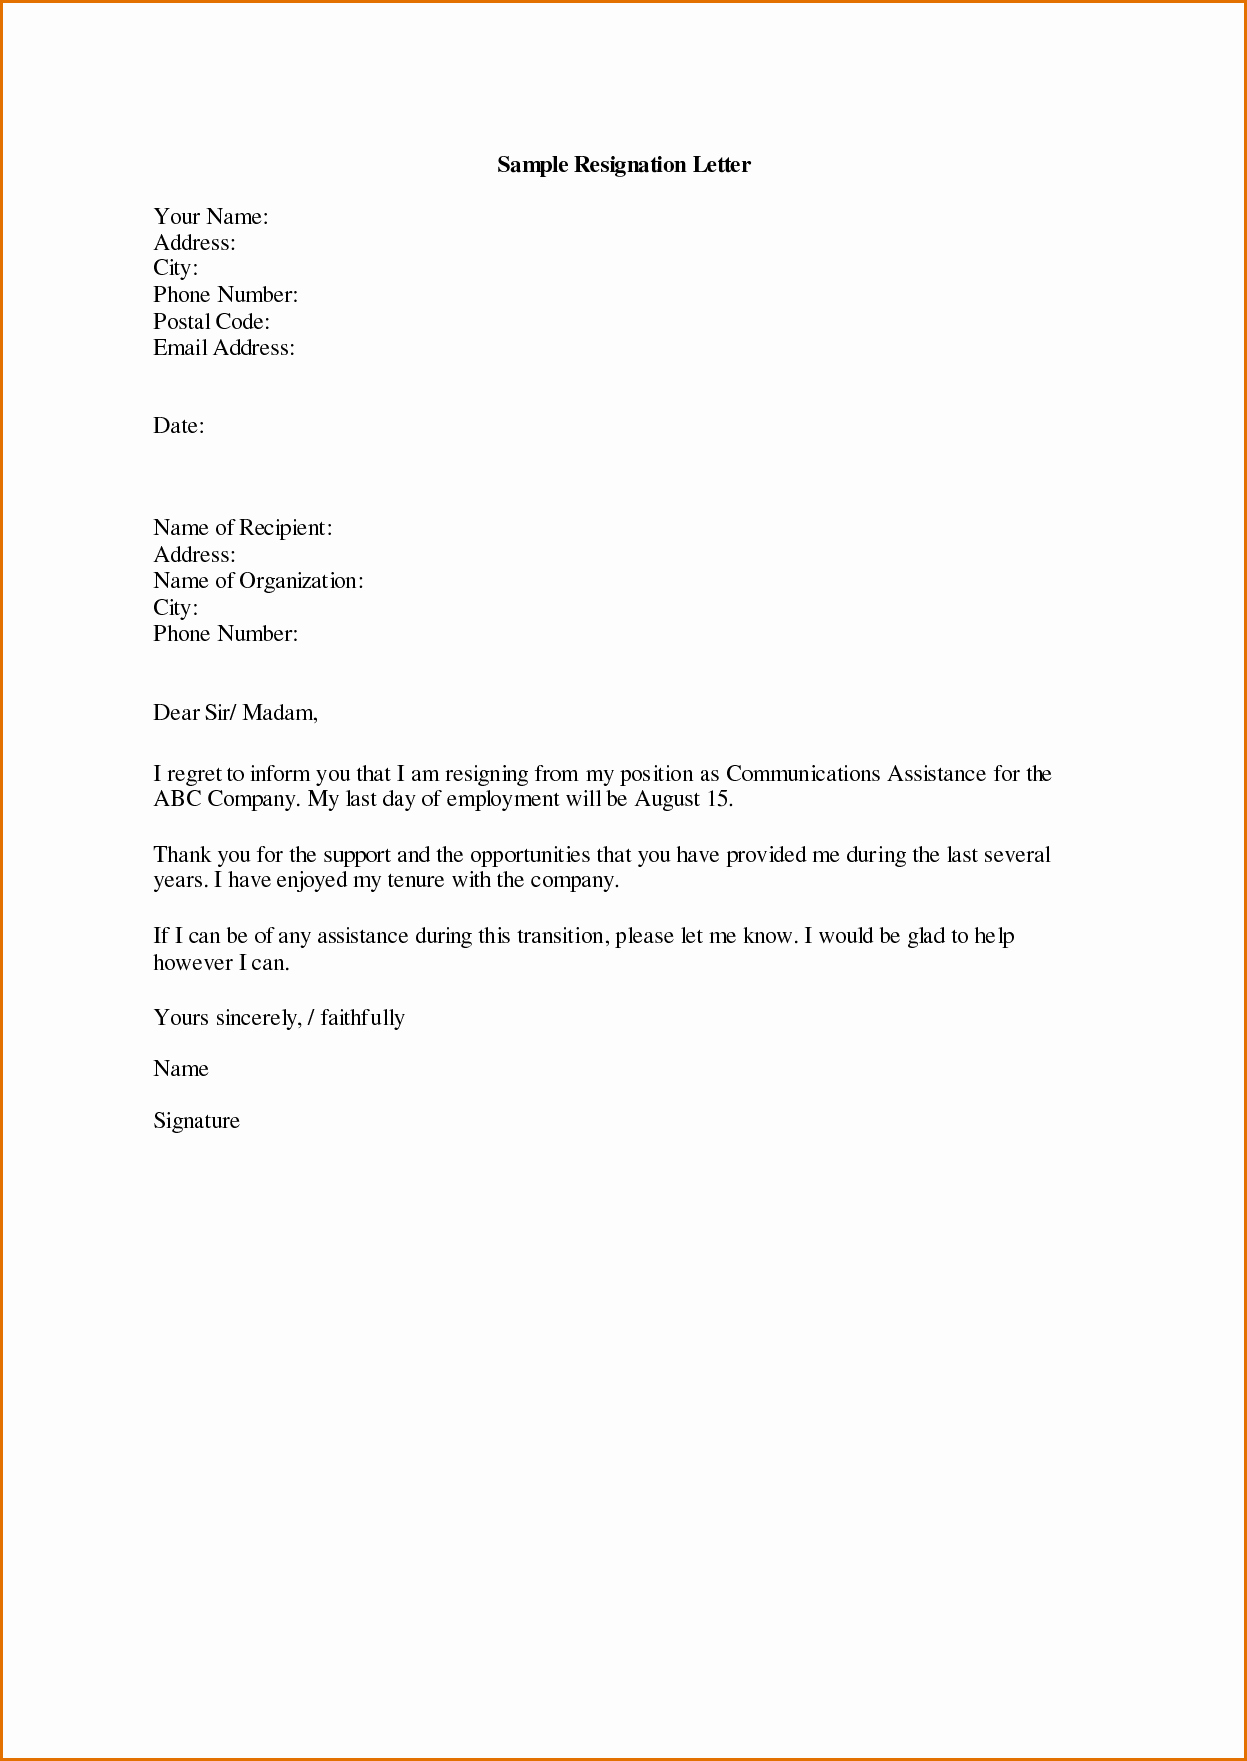 Letter Of Resignation Template Word Lovely Sample Displaying 16 Images for Letter Of Resignation